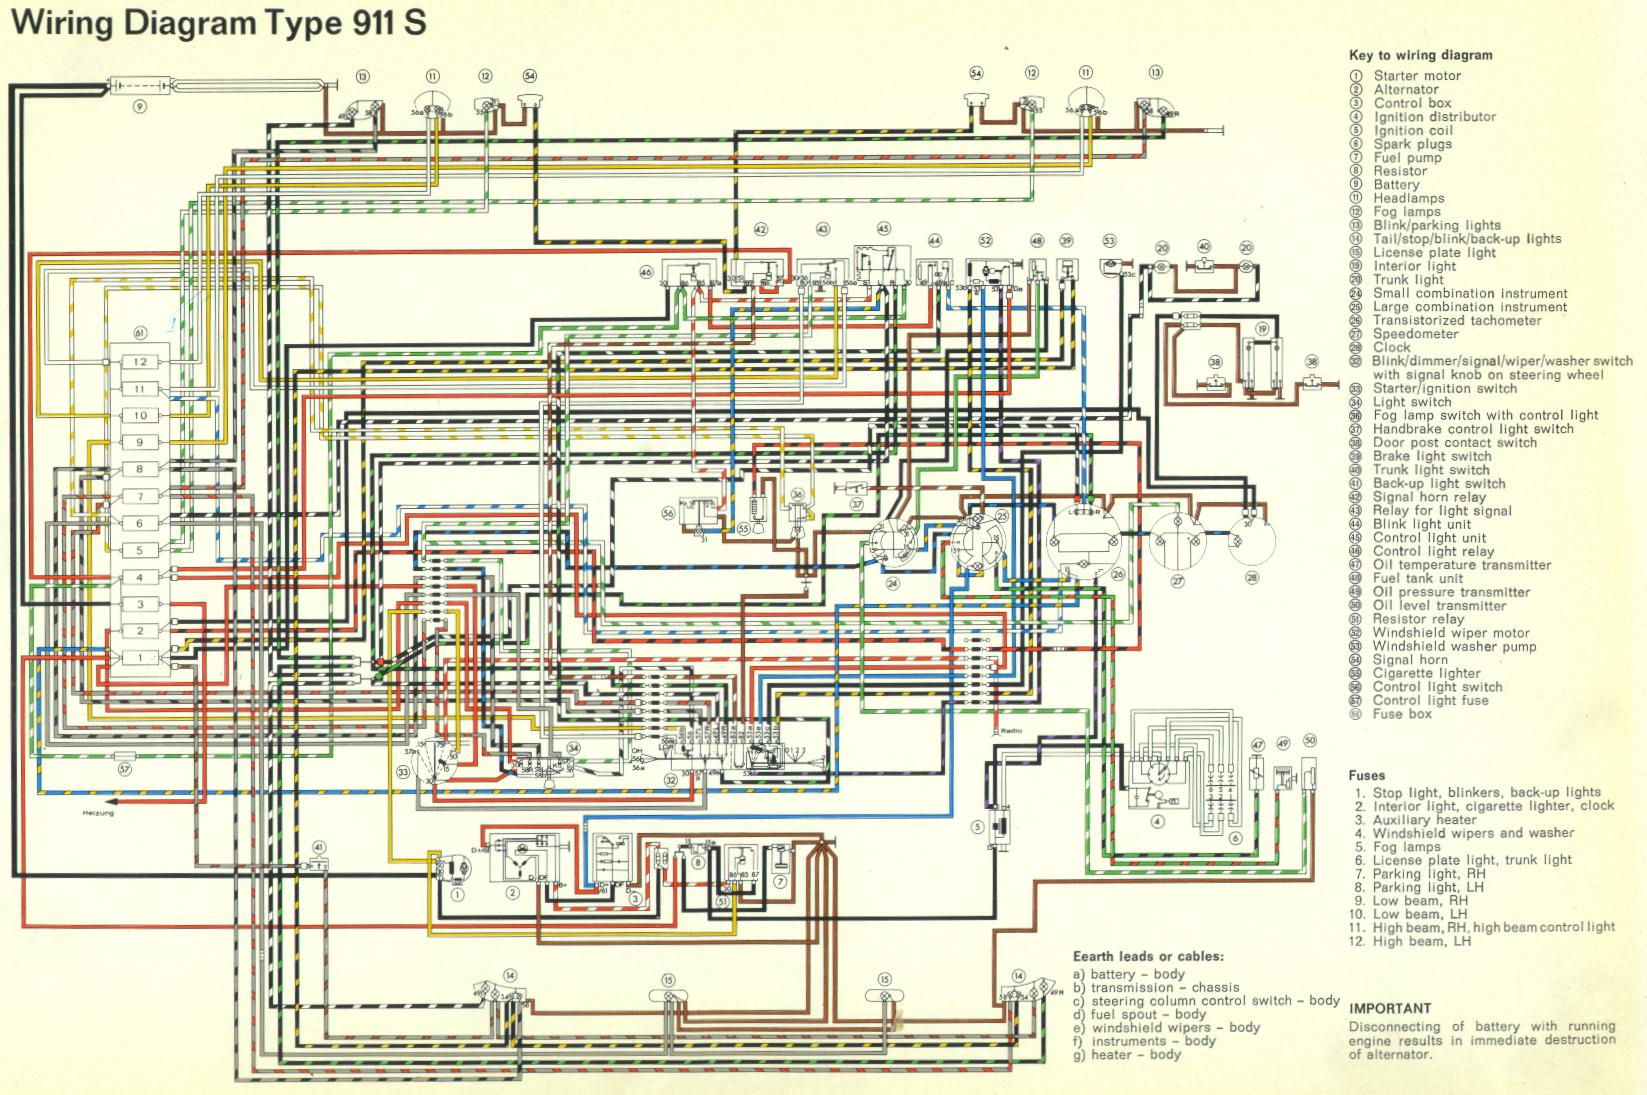 1978 porsche wiring diagram today wiring schematic diagram 1995 Ford Mustang Wiring Diagram